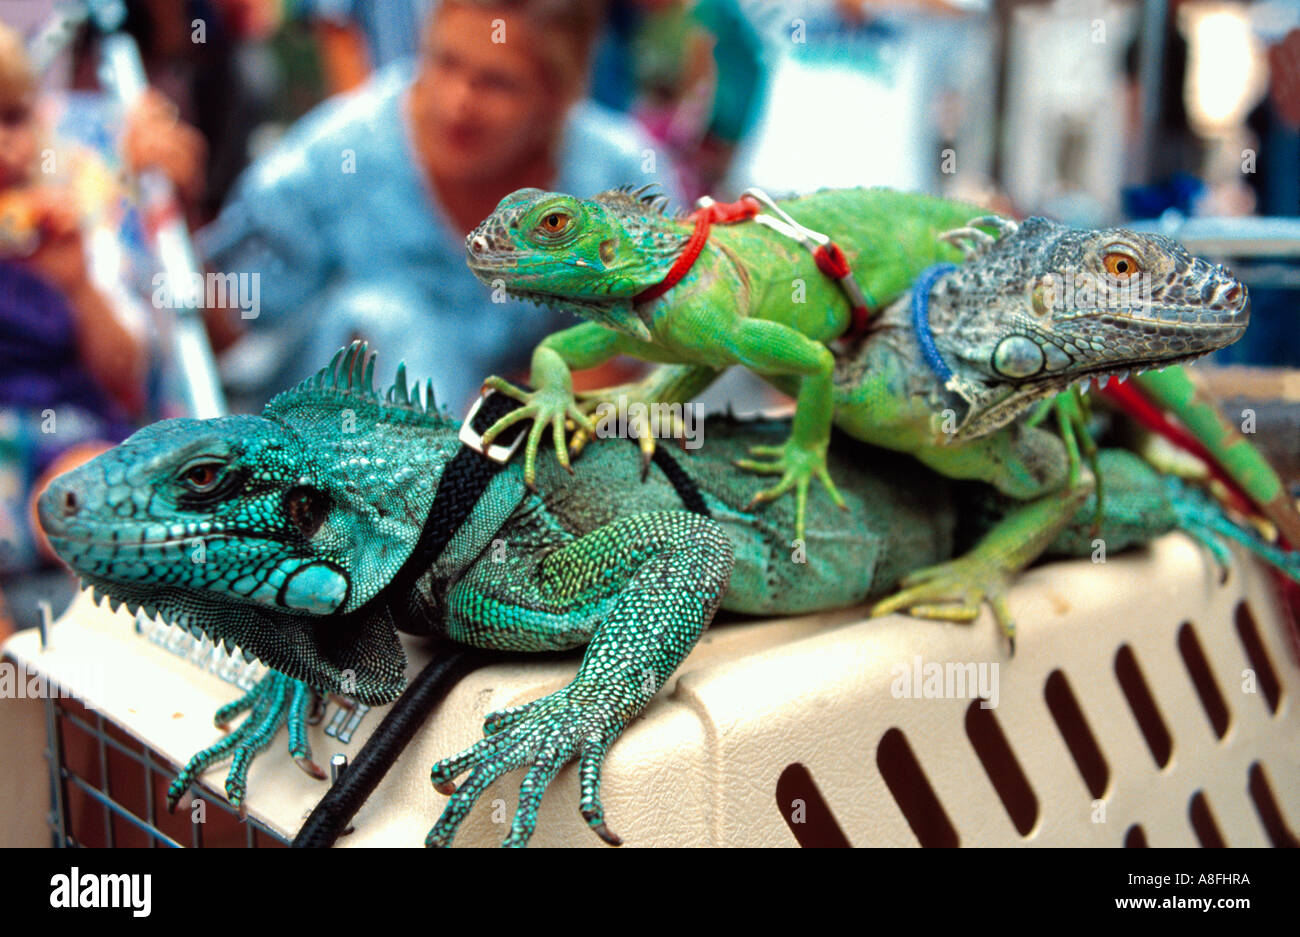 Des iguanes/lézards avec laisse en haut de la cage, New York, USA Photo Stock